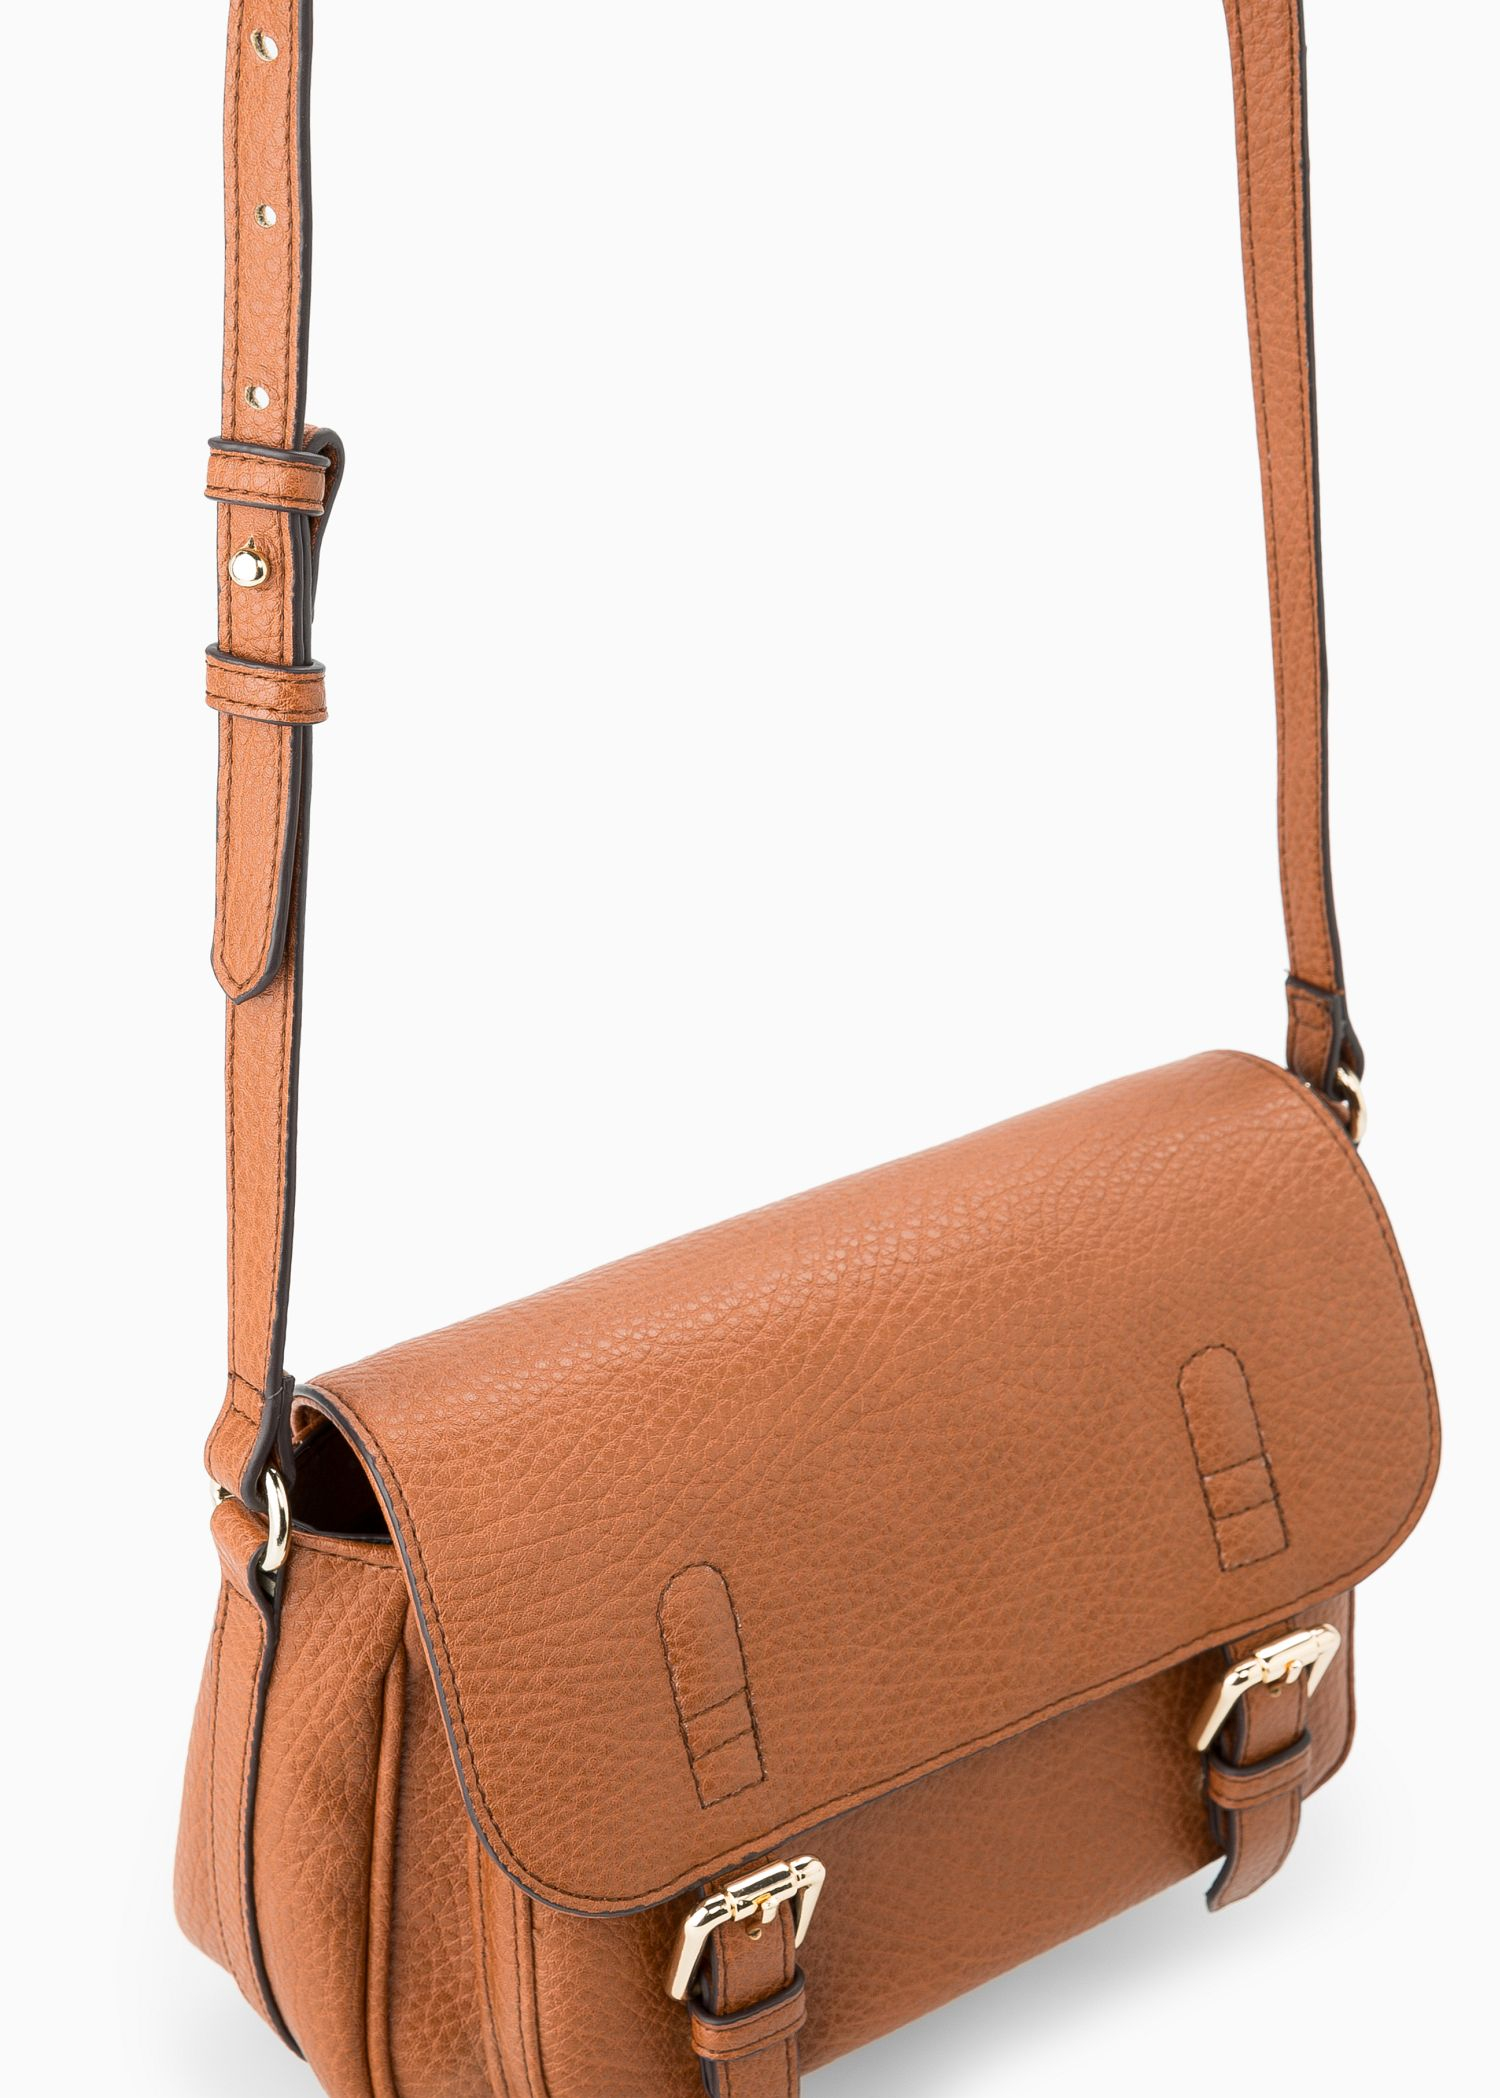 Mango Small Satchel Bag in Brown | Lyst